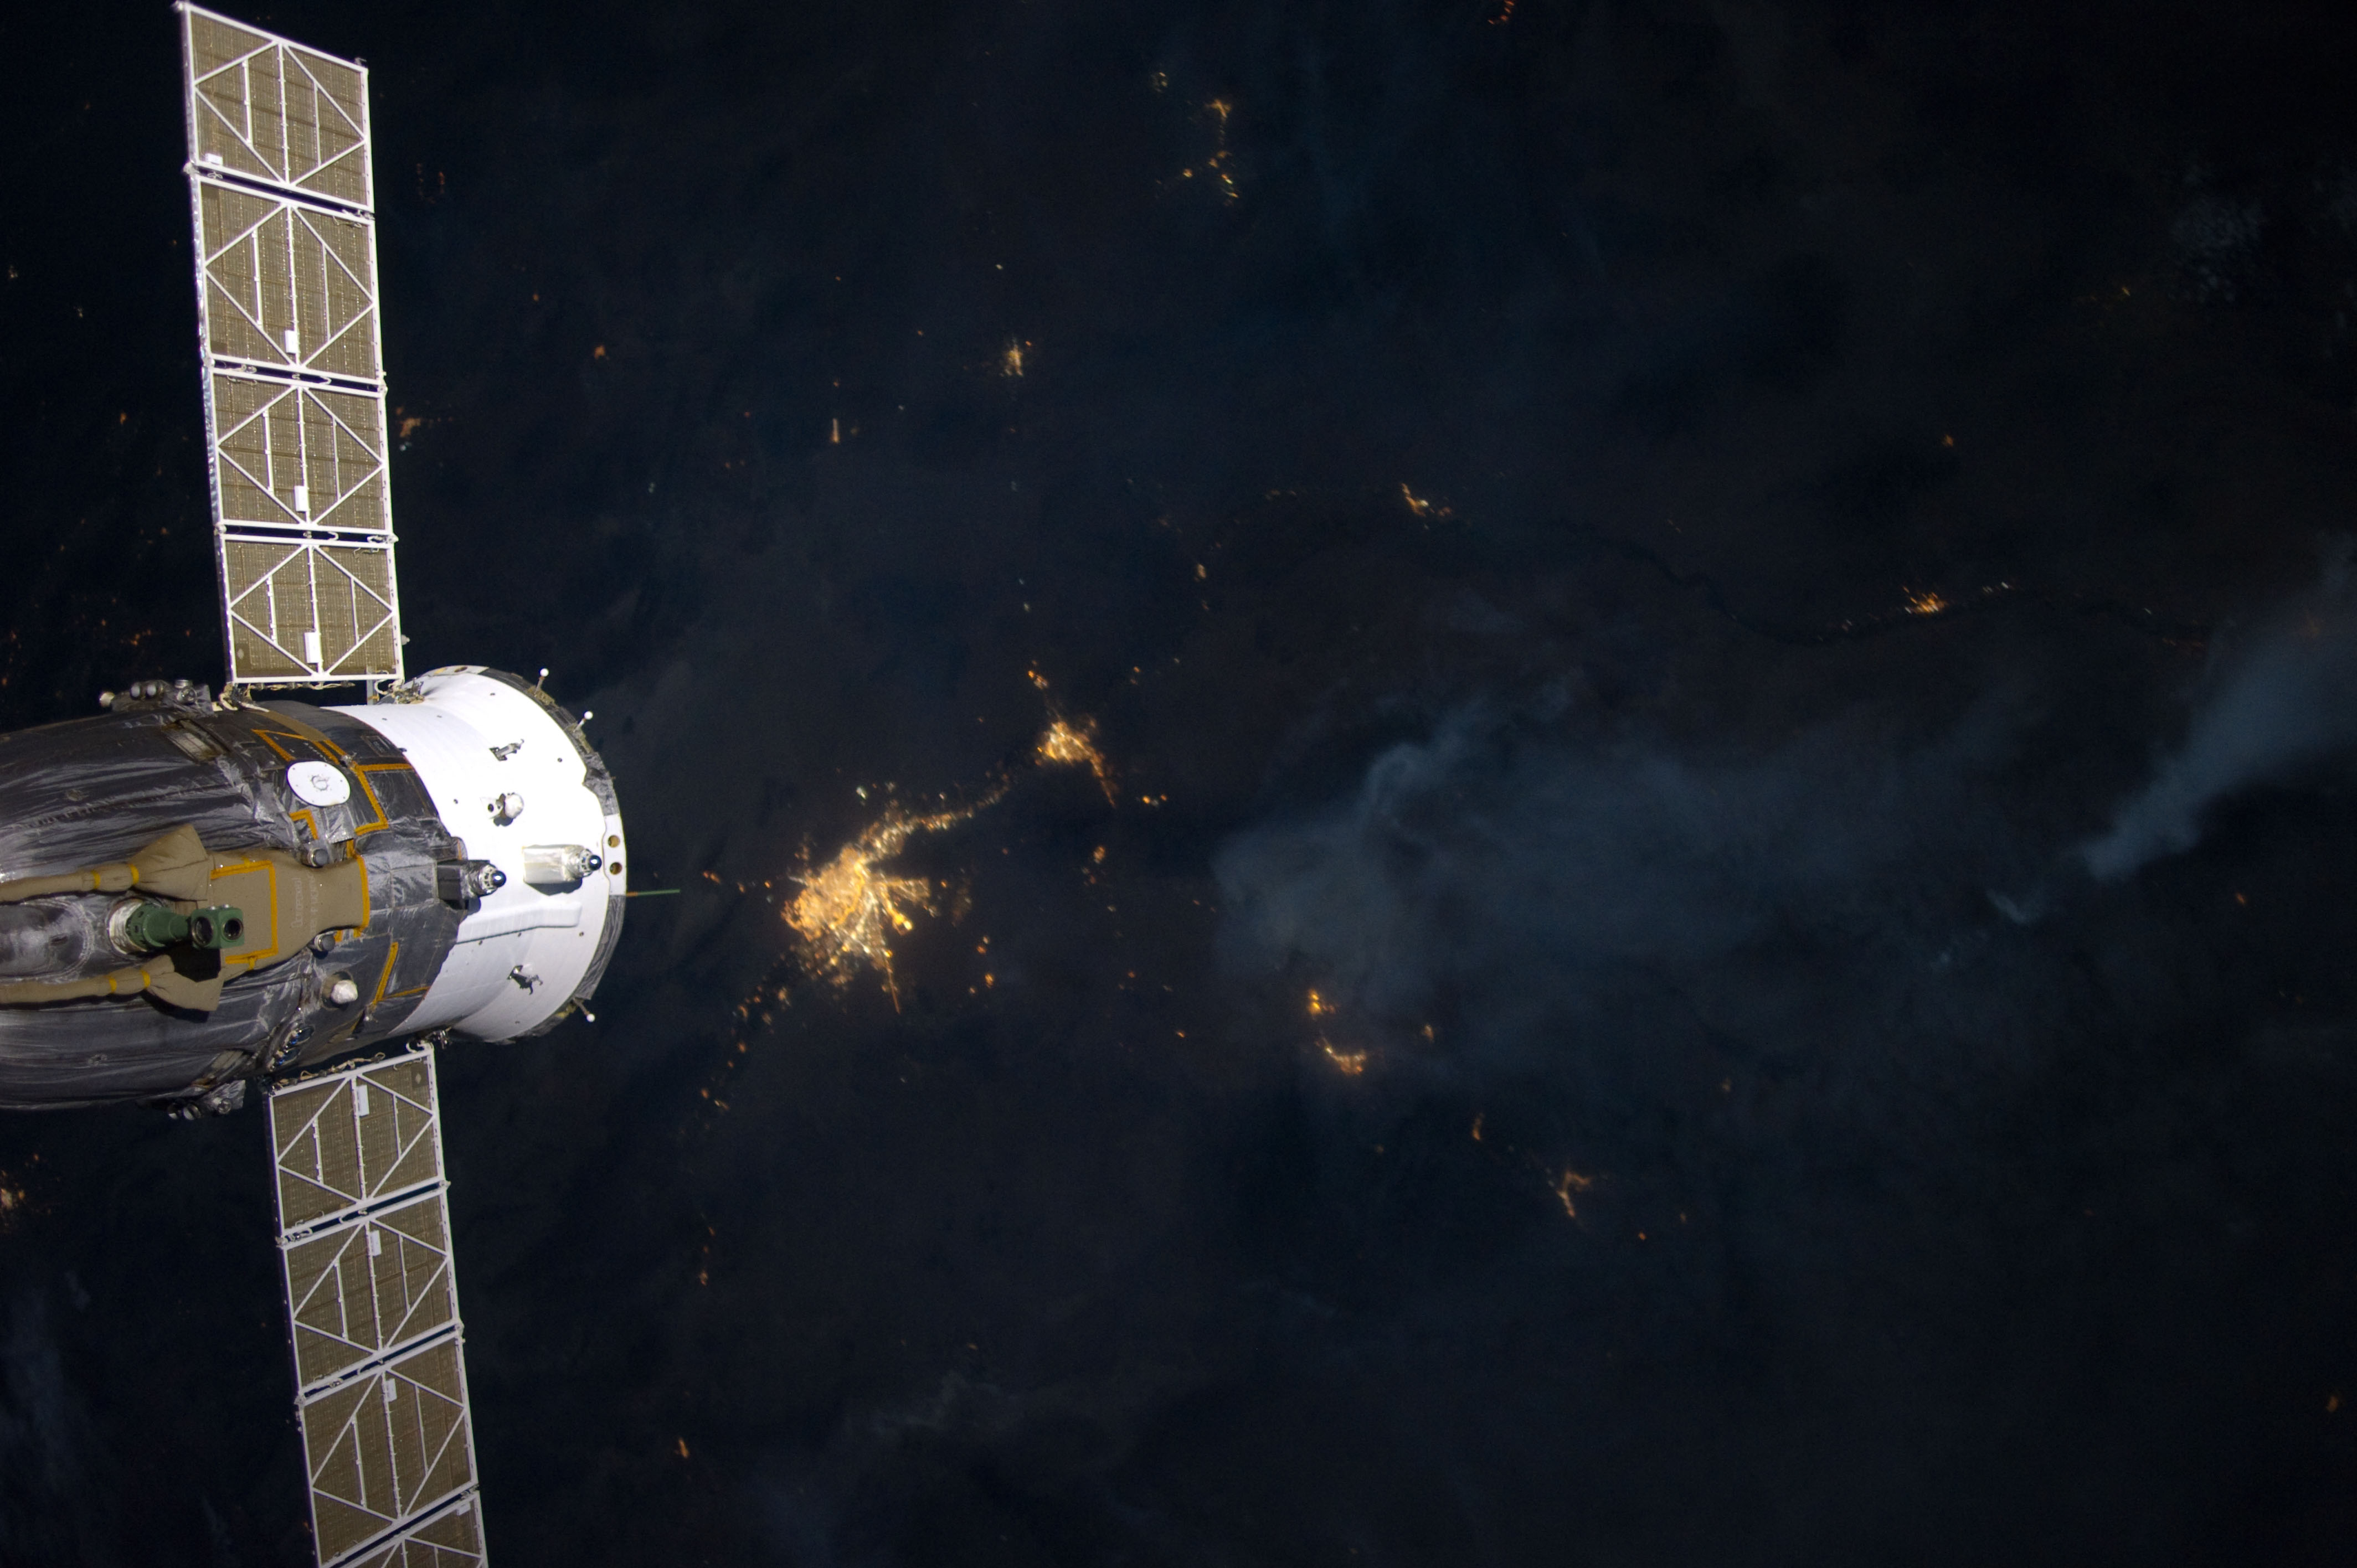 Fires with Soyuz Docked